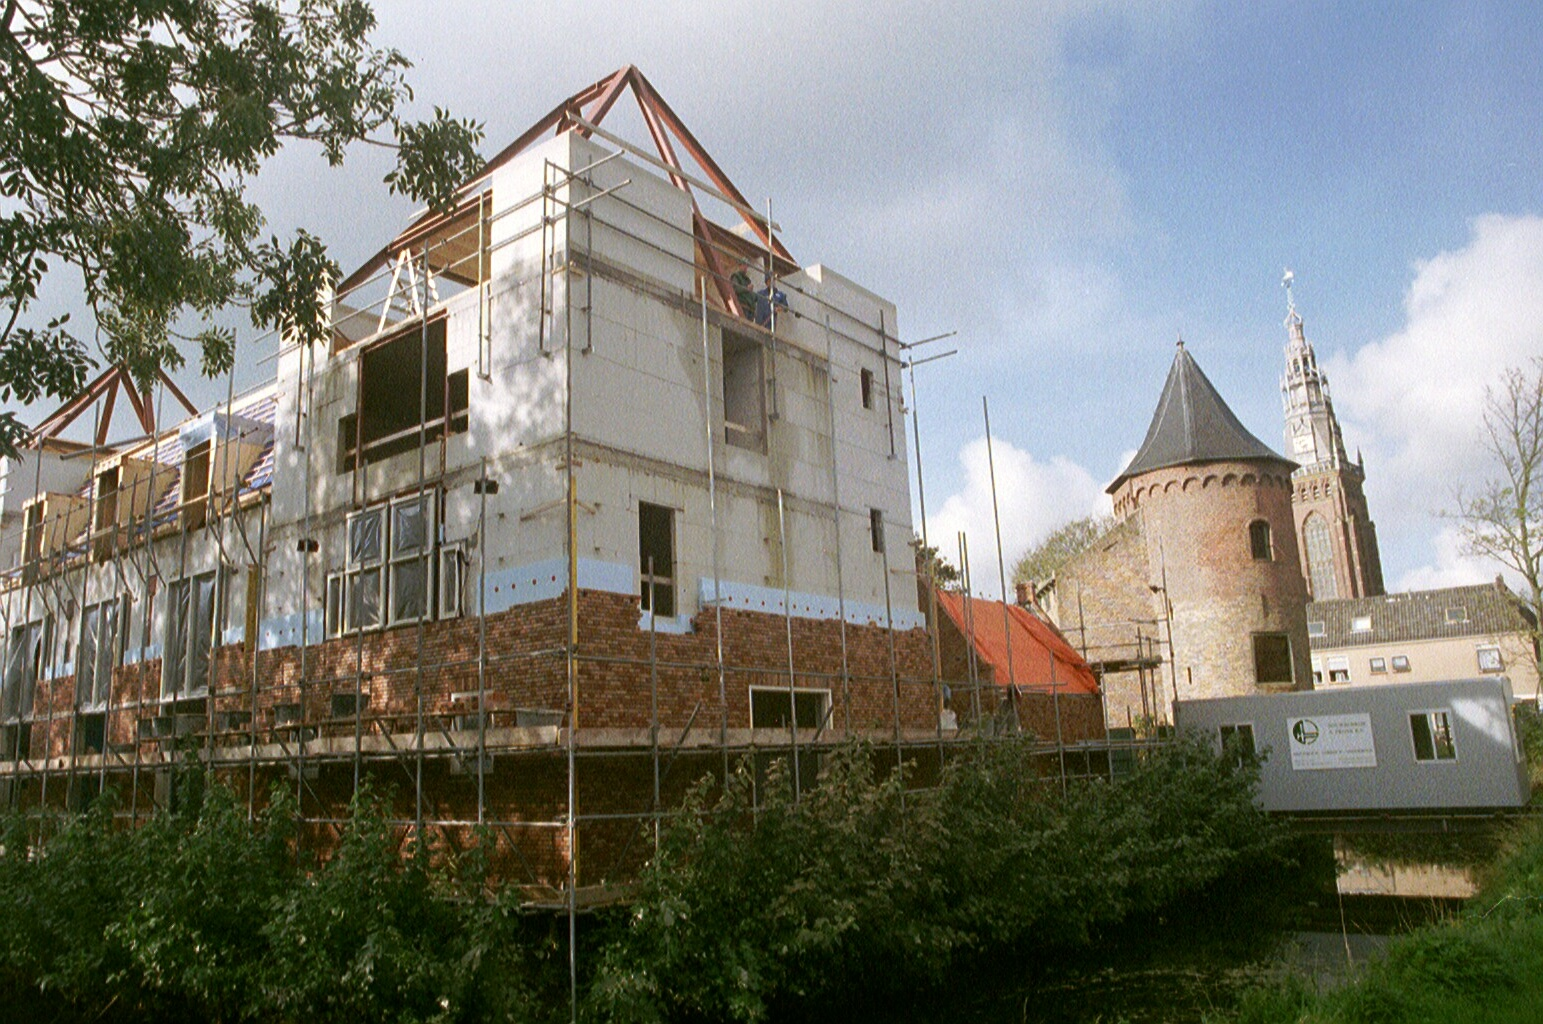 De herbouw in volle gang